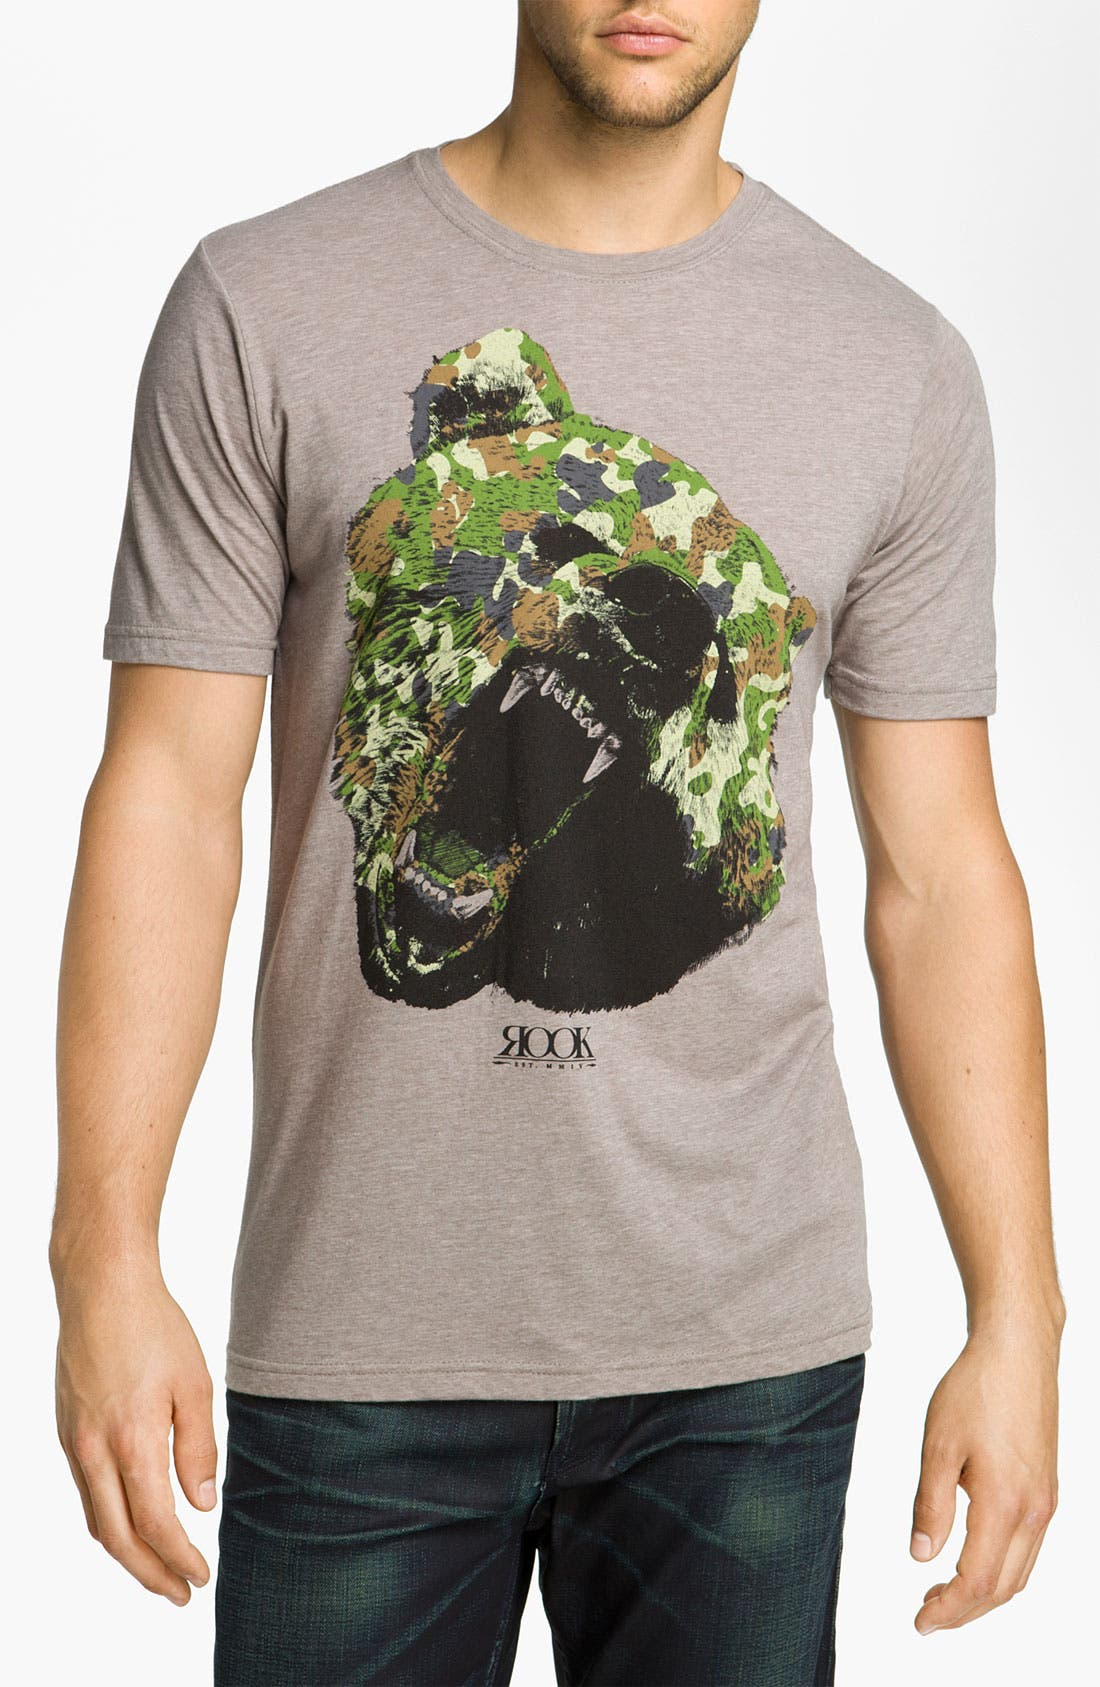 Alternate Image 1 Selected - Rook 'Camo Bear' Graphic T-Shirt